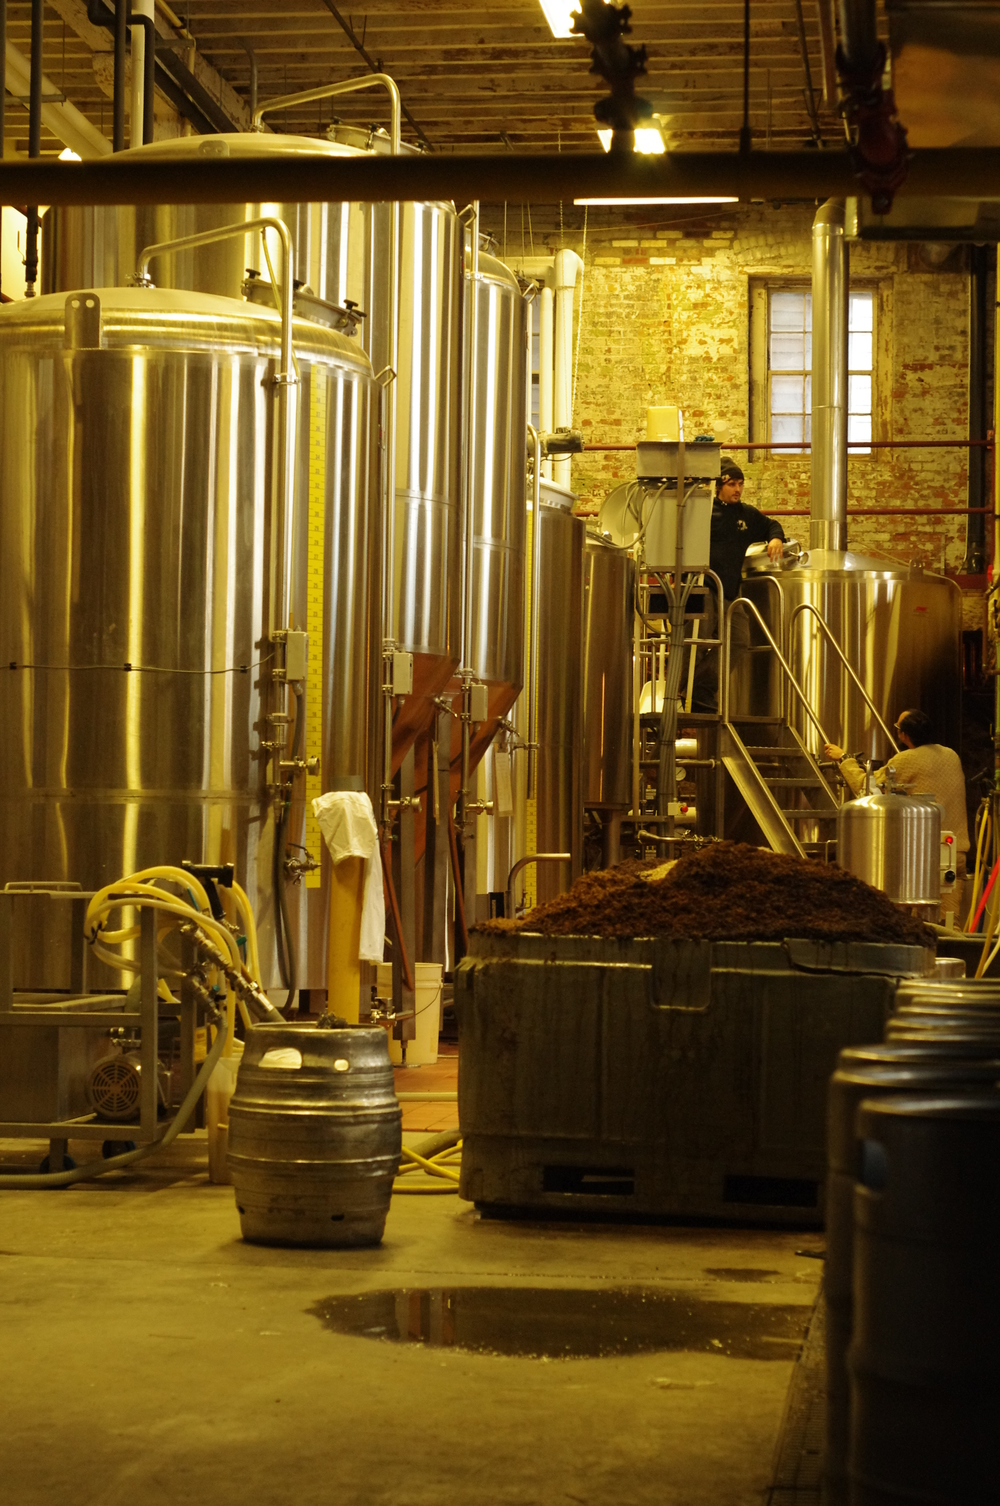 The brewhouse sits directly below the taproom in the restored building